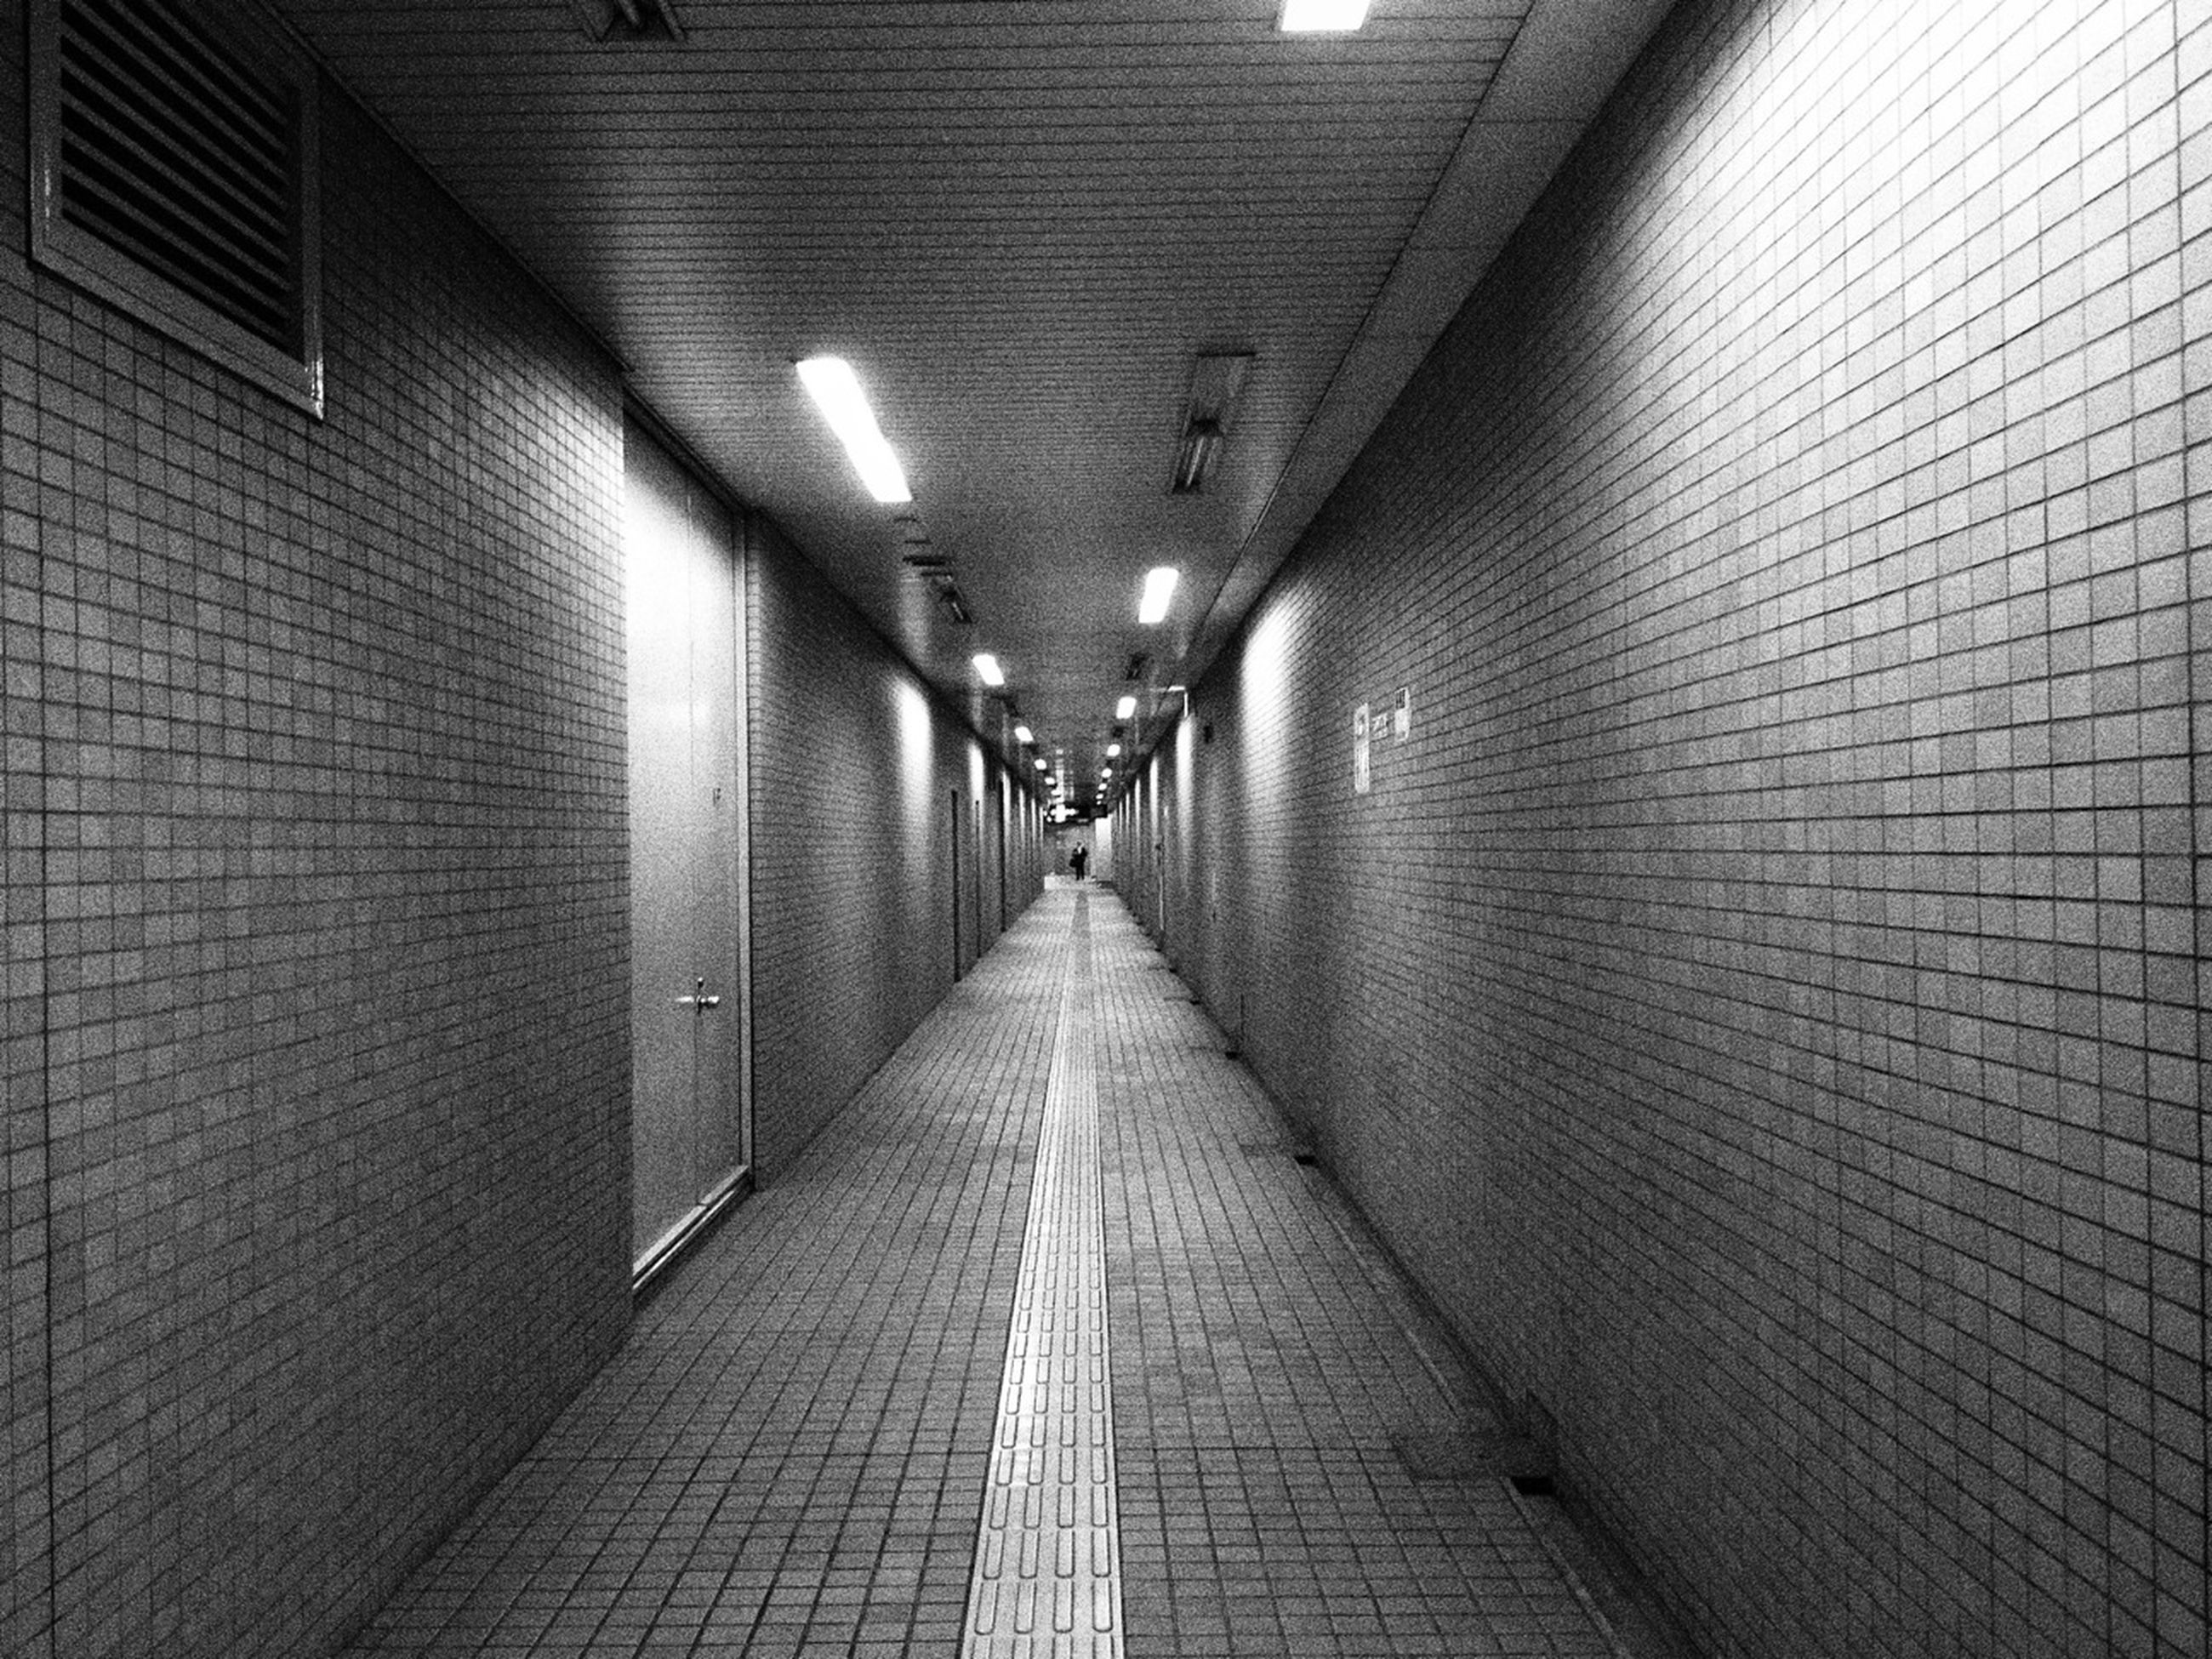 indoors, illuminated, the way forward, diminishing perspective, lighting equipment, ceiling, architecture, built structure, tunnel, corridor, wall - building feature, vanishing point, wall, electric light, pattern, empty, reflection, one person, light - natural phenomenon